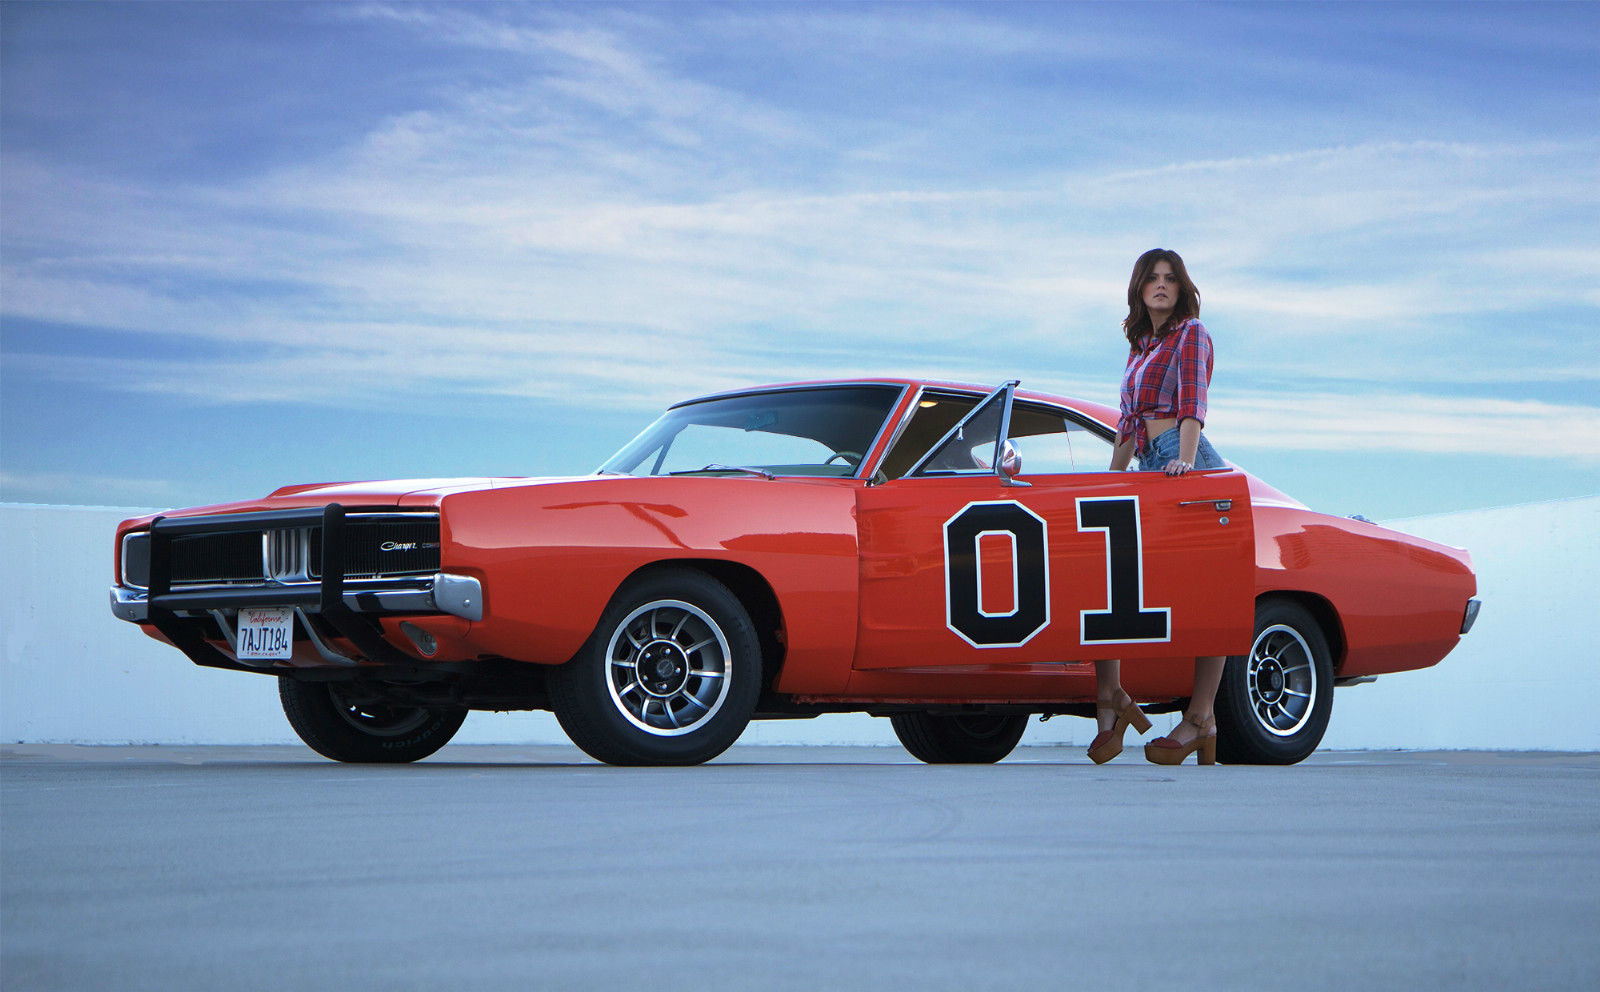 1969 dodge charger general lee dukes of hazzard for sale or for rent classic dodge charger. Black Bedroom Furniture Sets. Home Design Ideas